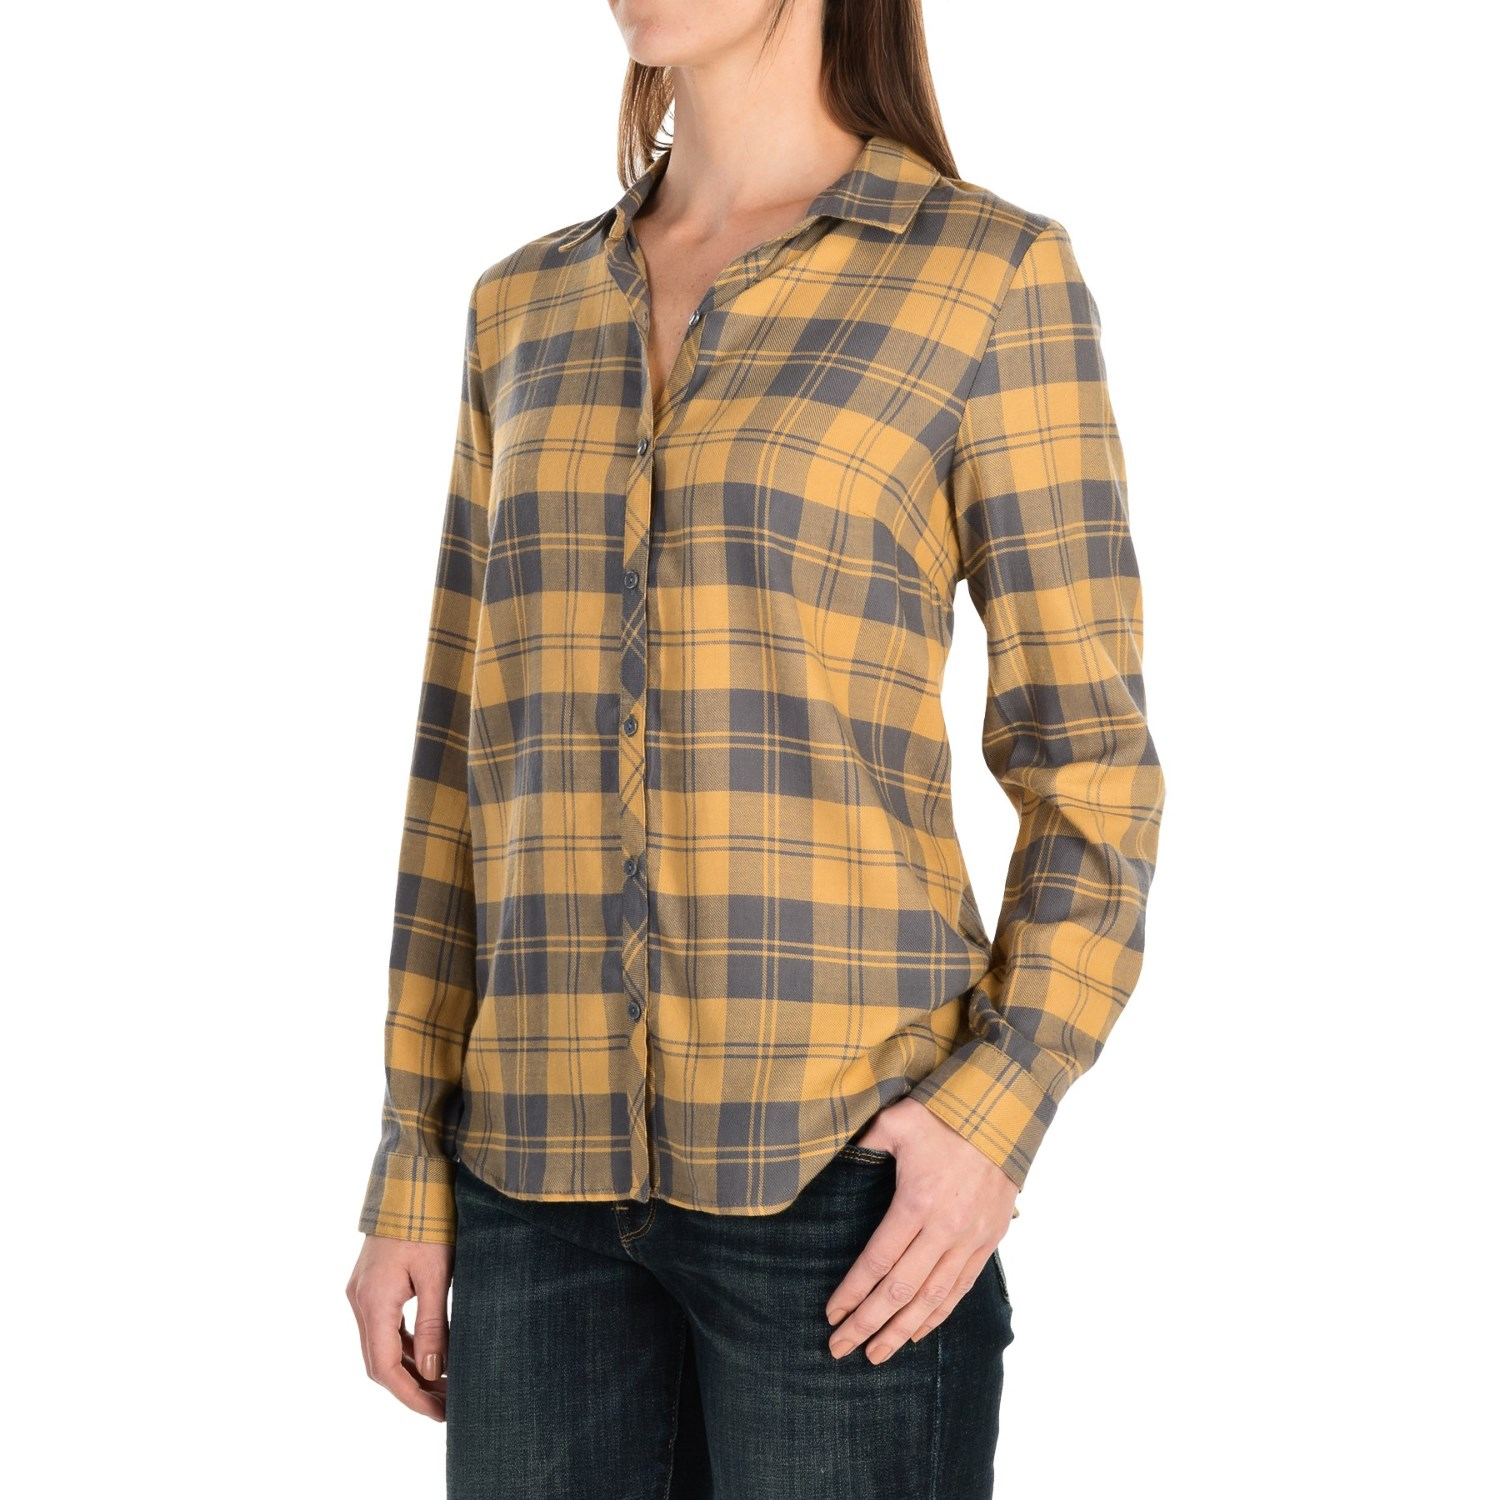 G h bass co plaid shirt for women save 83 for Plaid shirt long sleeve